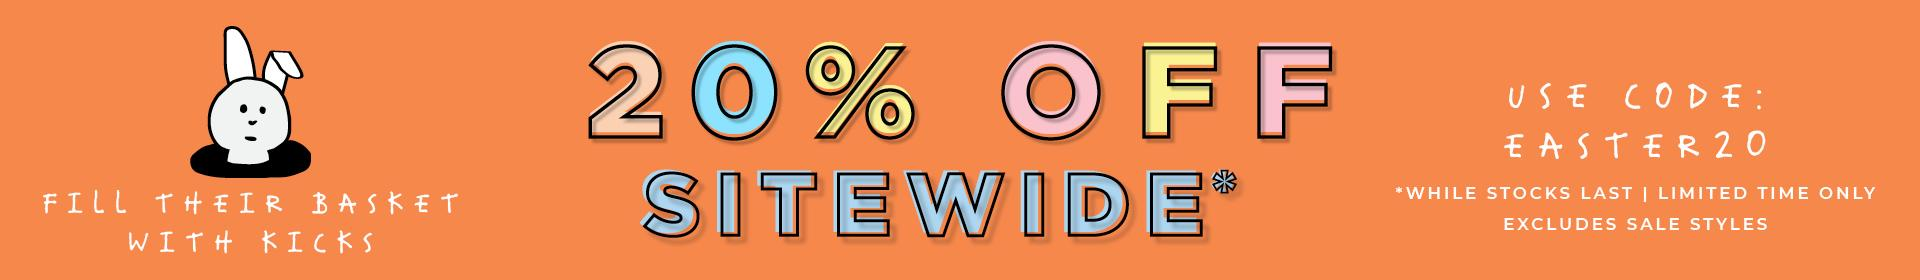 20% Off Sitewide Easter Sale | Excludes Sale | Use Code: EASTER20 | Ends Monday